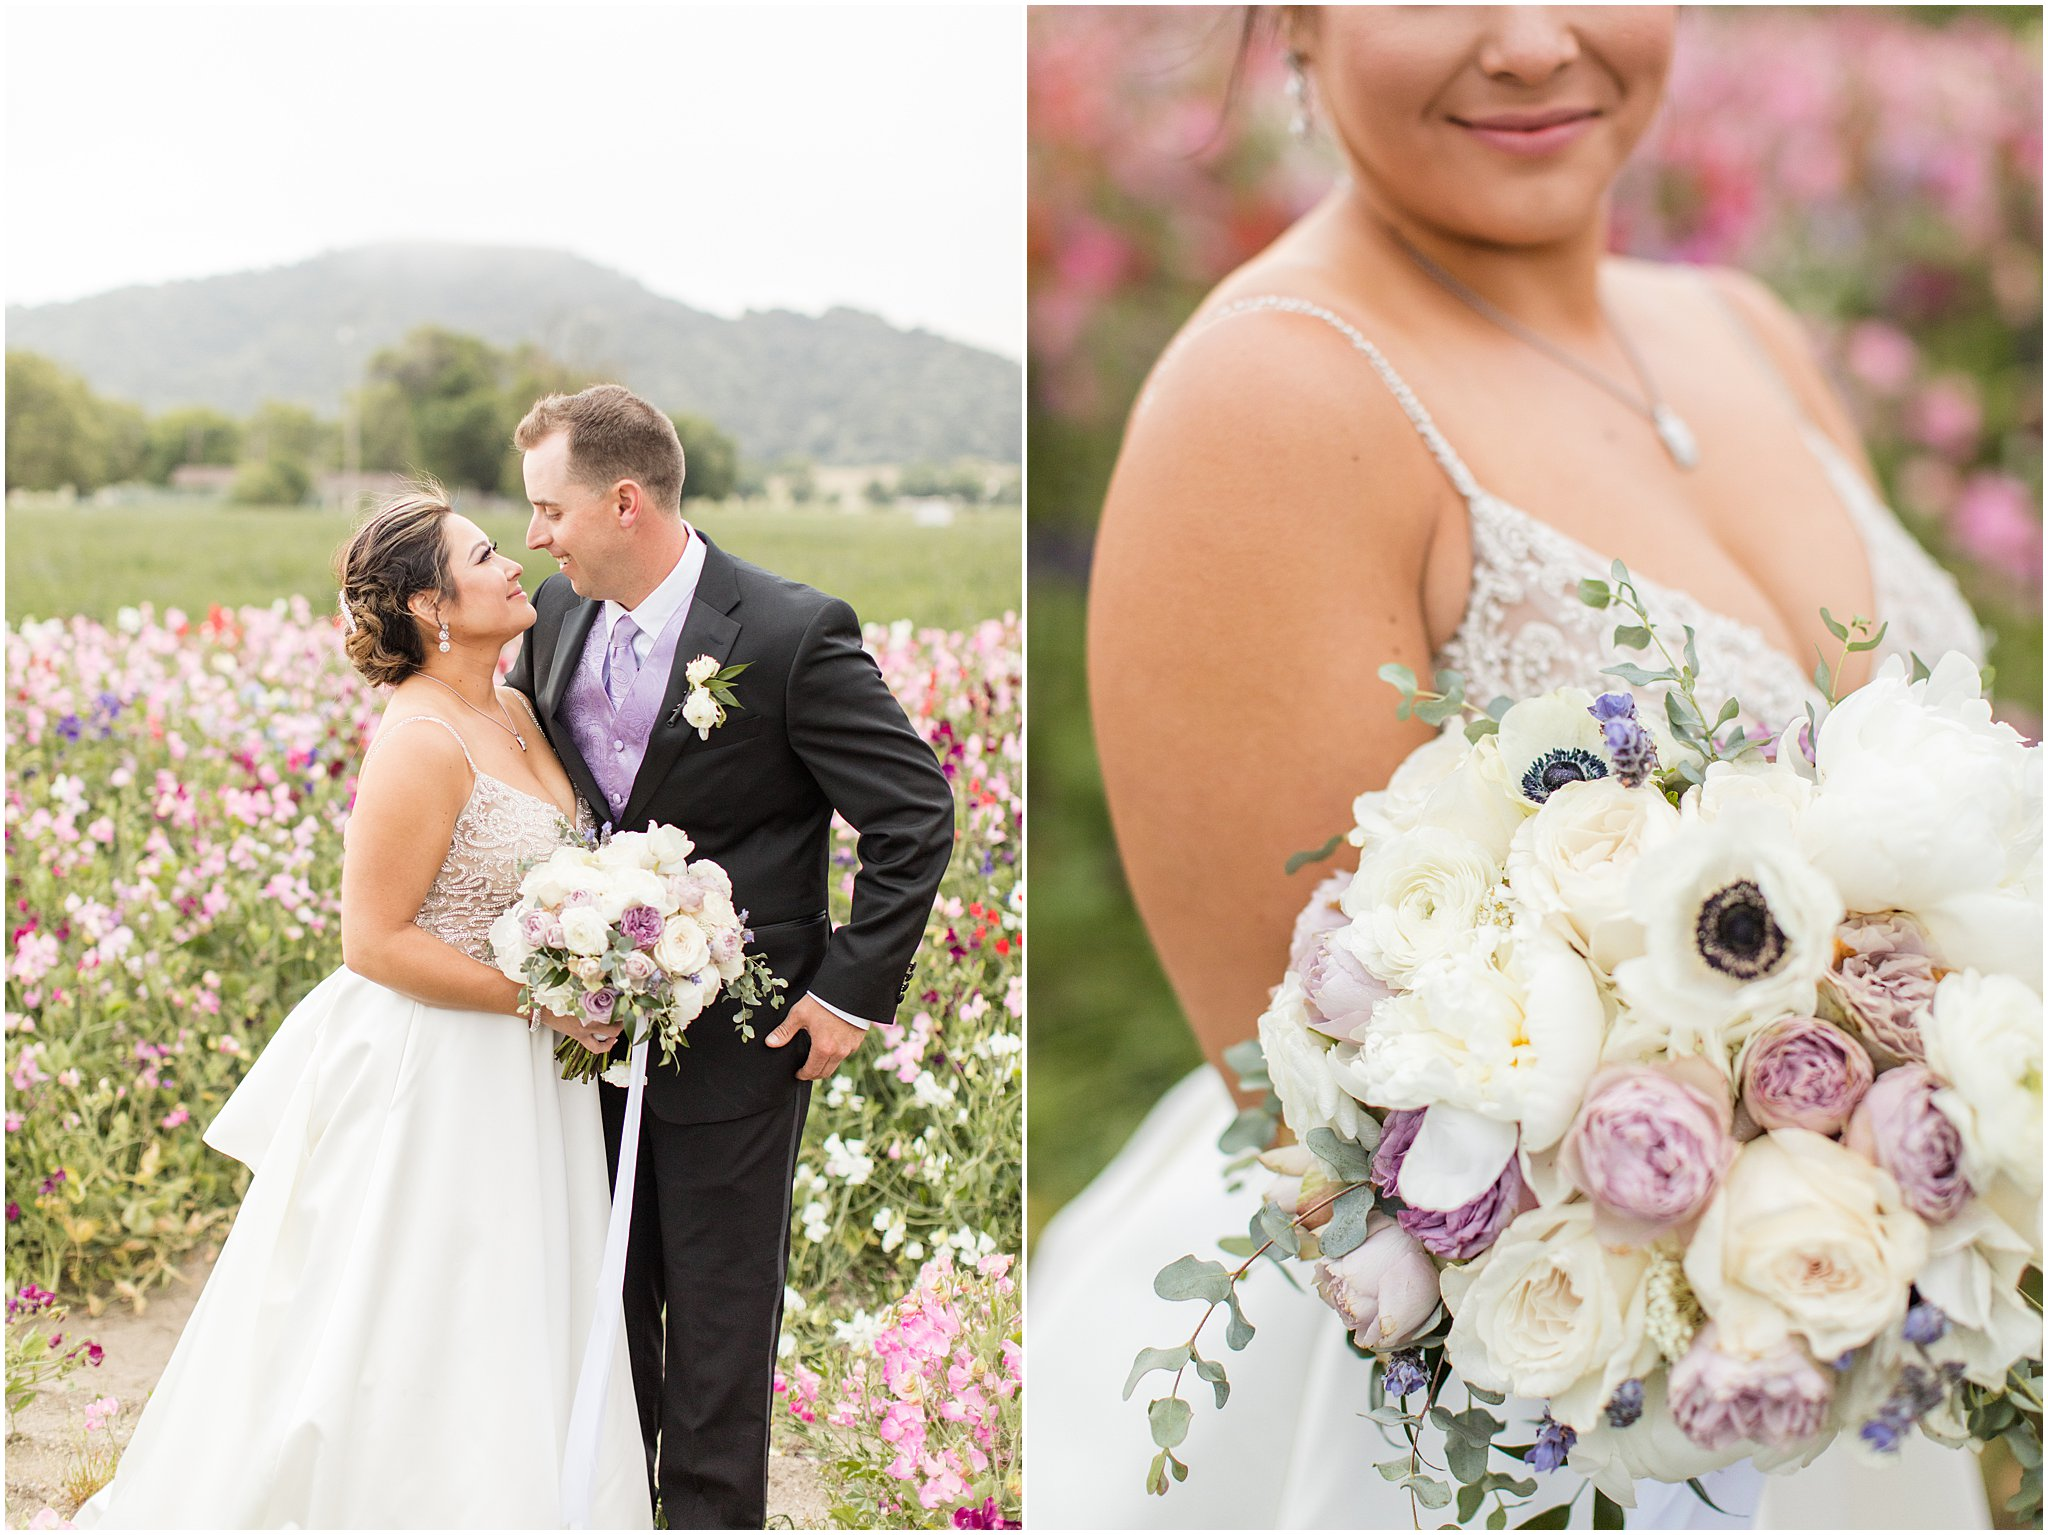 2019 wedding san juan bautista hacienda de leal vineyards bay area wedding photographer_0091.jpg